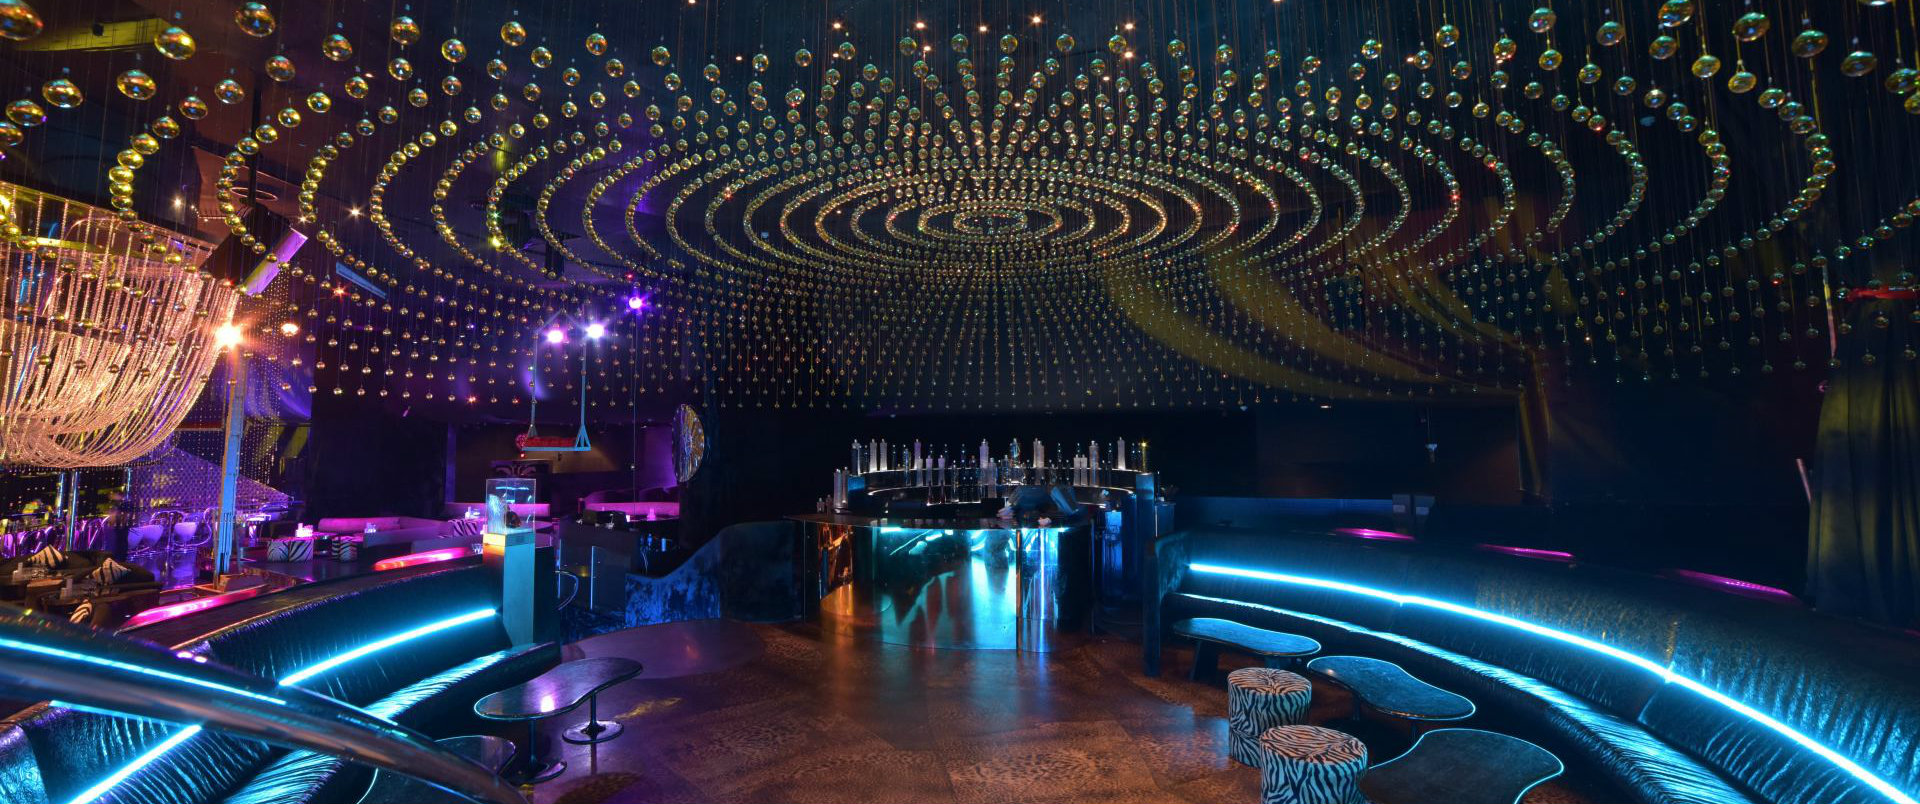 Night Club with Swarovski Crystals by Roberto Cavalli most instagrammable places in milan 7 Most Instagrammable Places In Milan cover3 most instagrammable places in milan 7 Most Instagrammable Places In Milan cover3